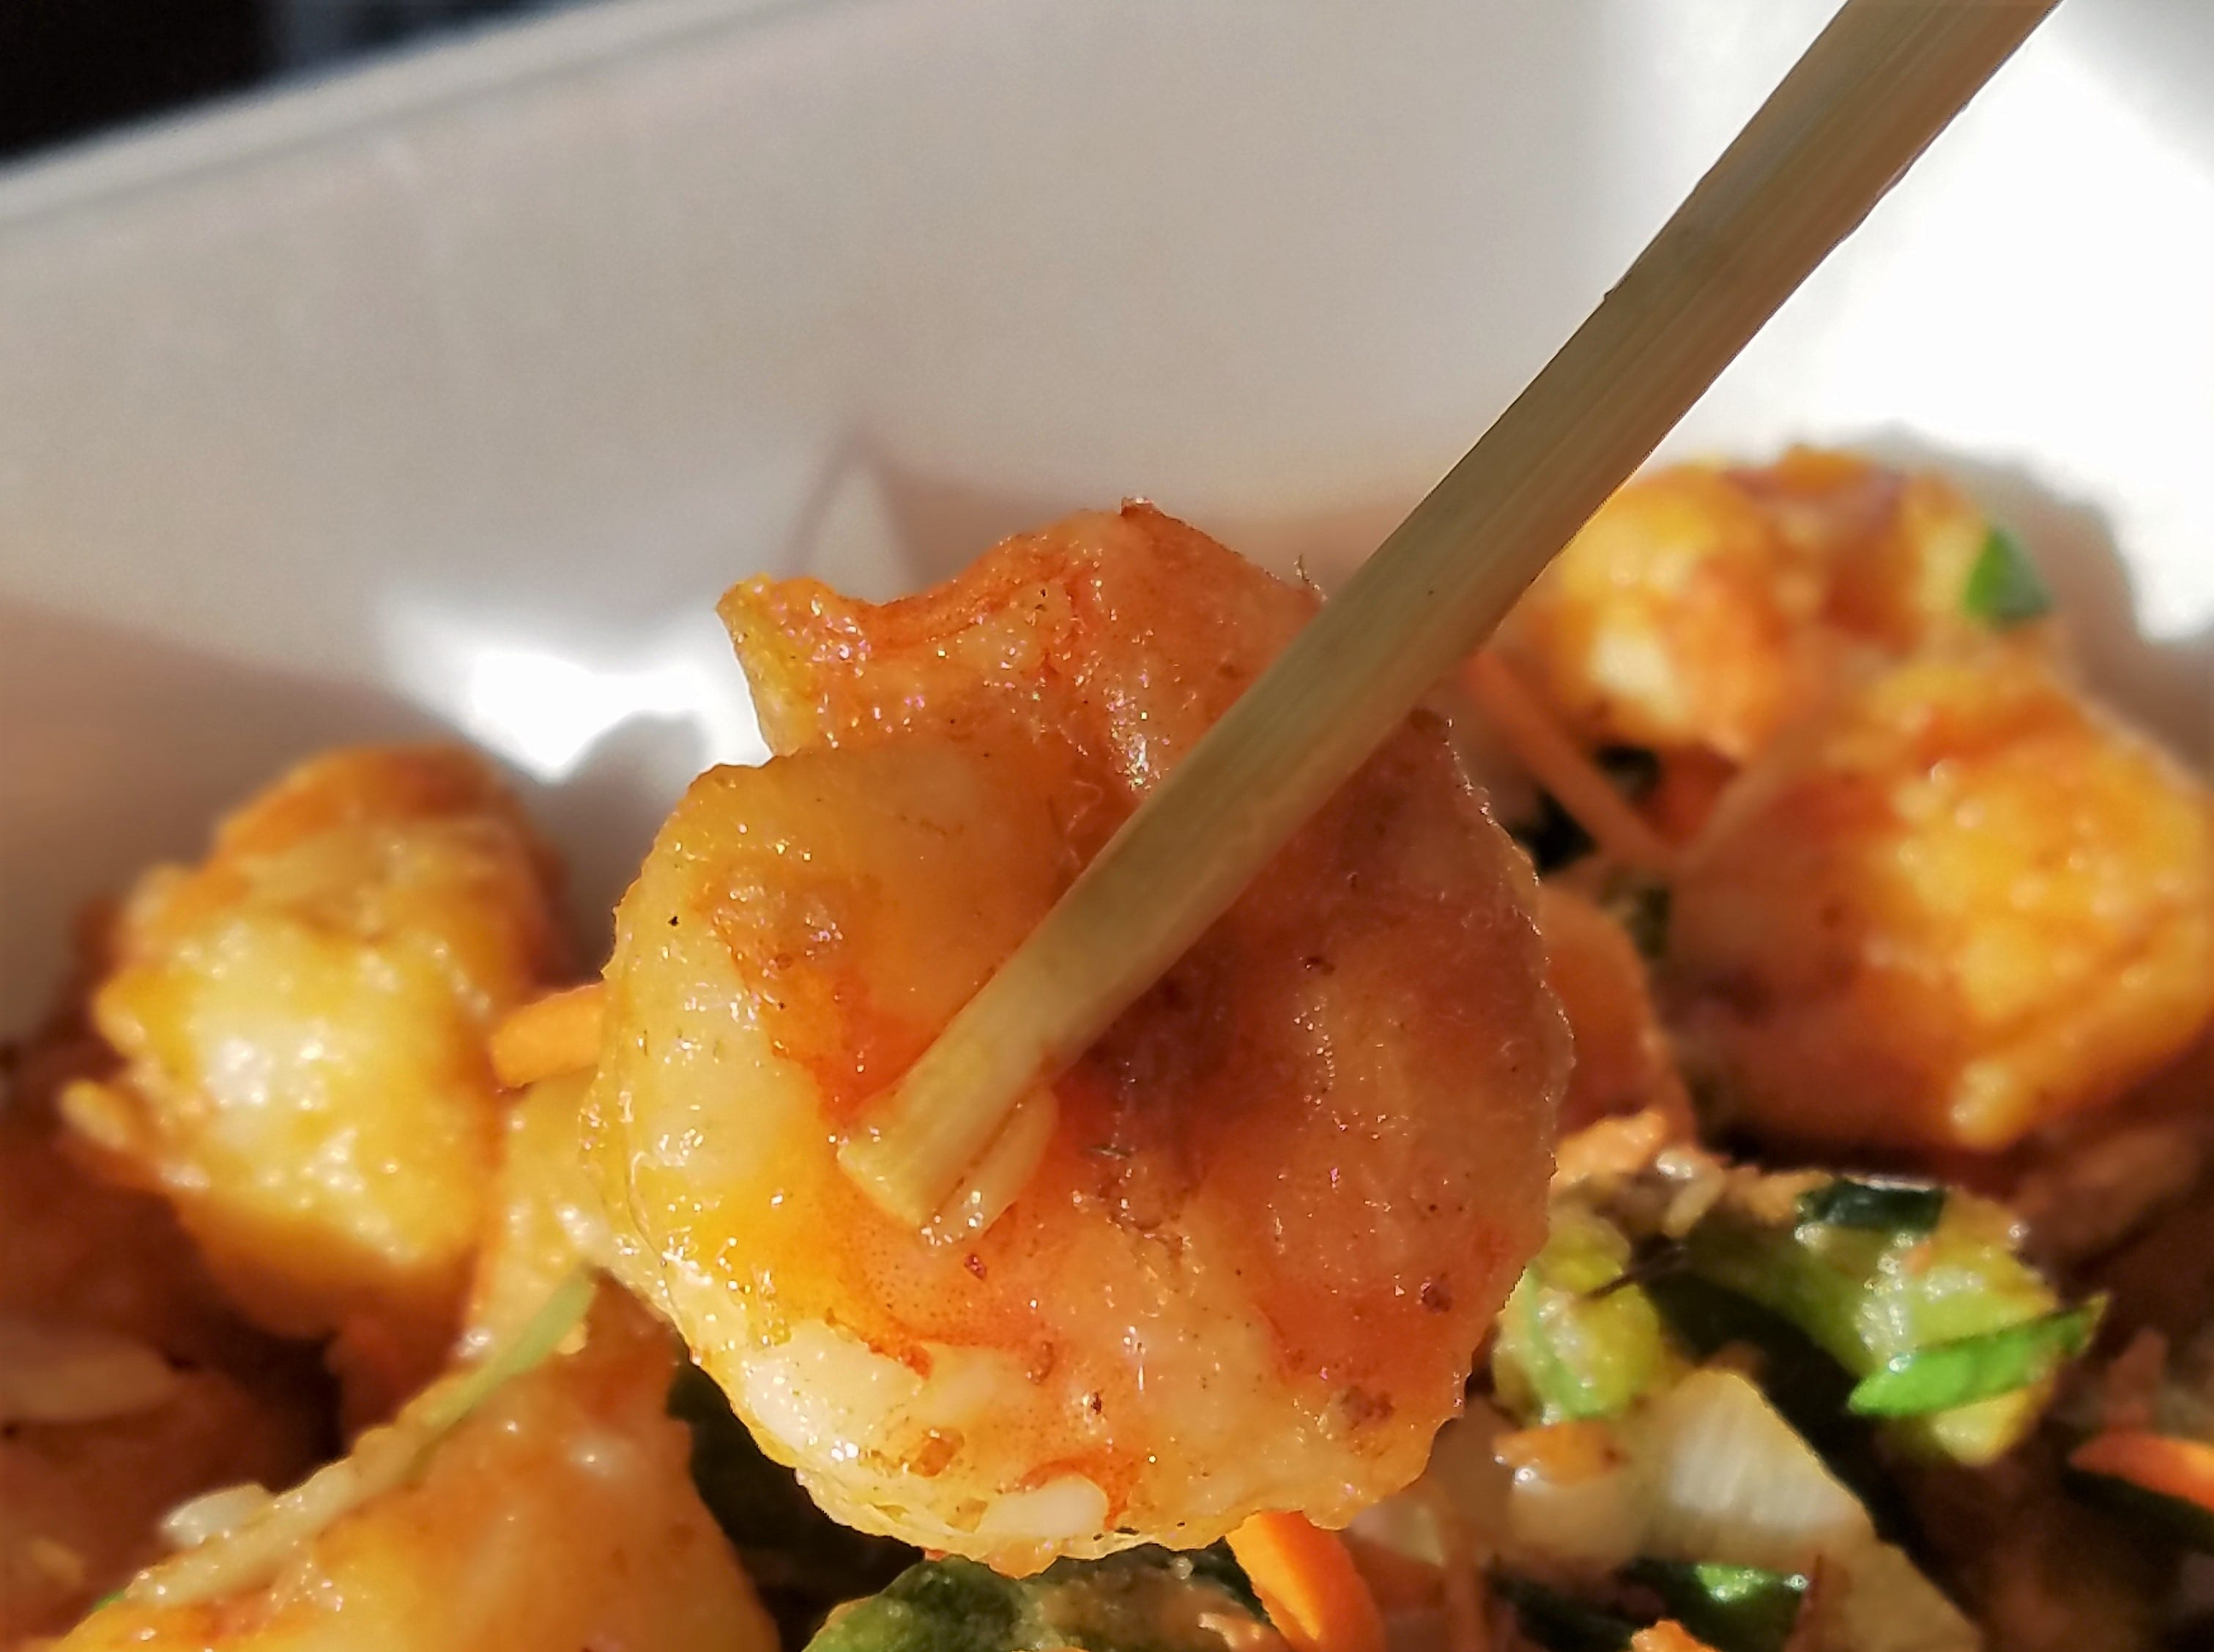 Flavorful salt and pepper shrimp from Yum Yum Chinese Restaurant in Henderson.